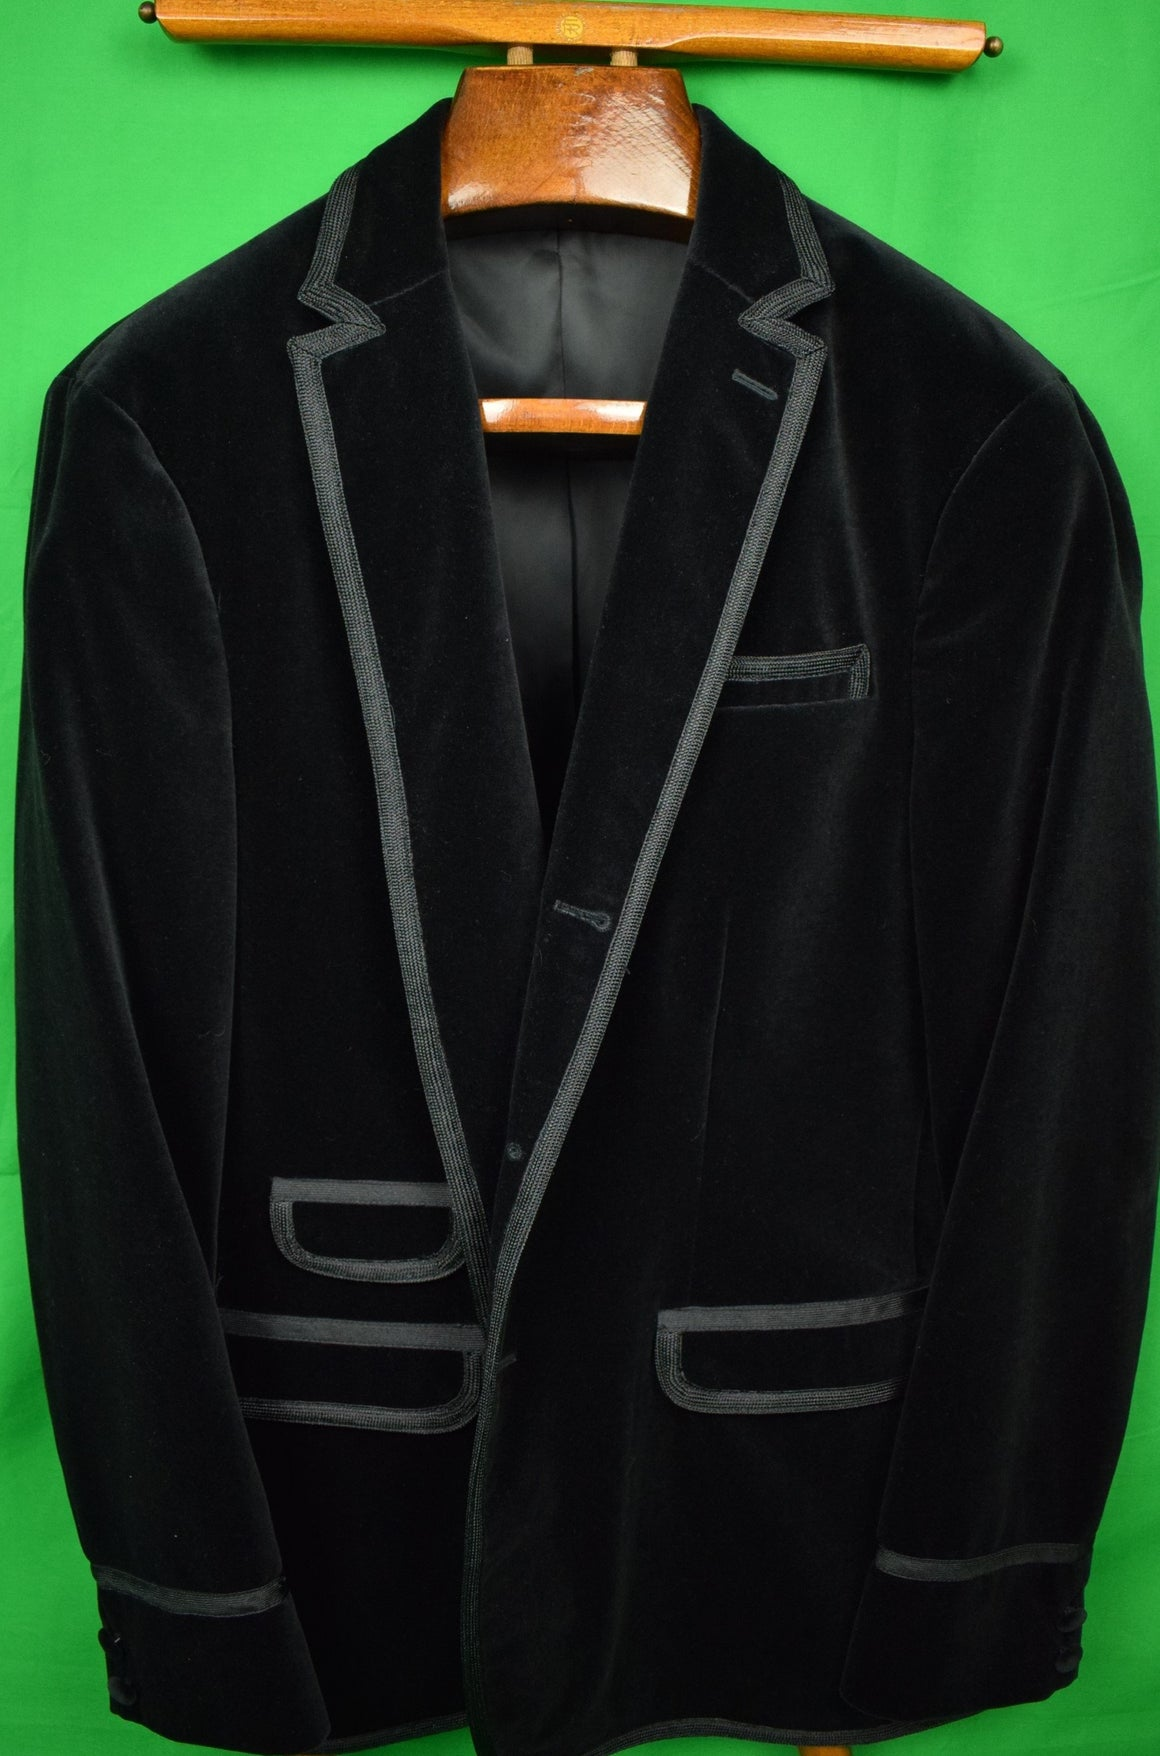 Rugby Ralph Lauren Black Velvet Dinner/ Smoking Jacket Sz: XL/ 46R (Sold!)